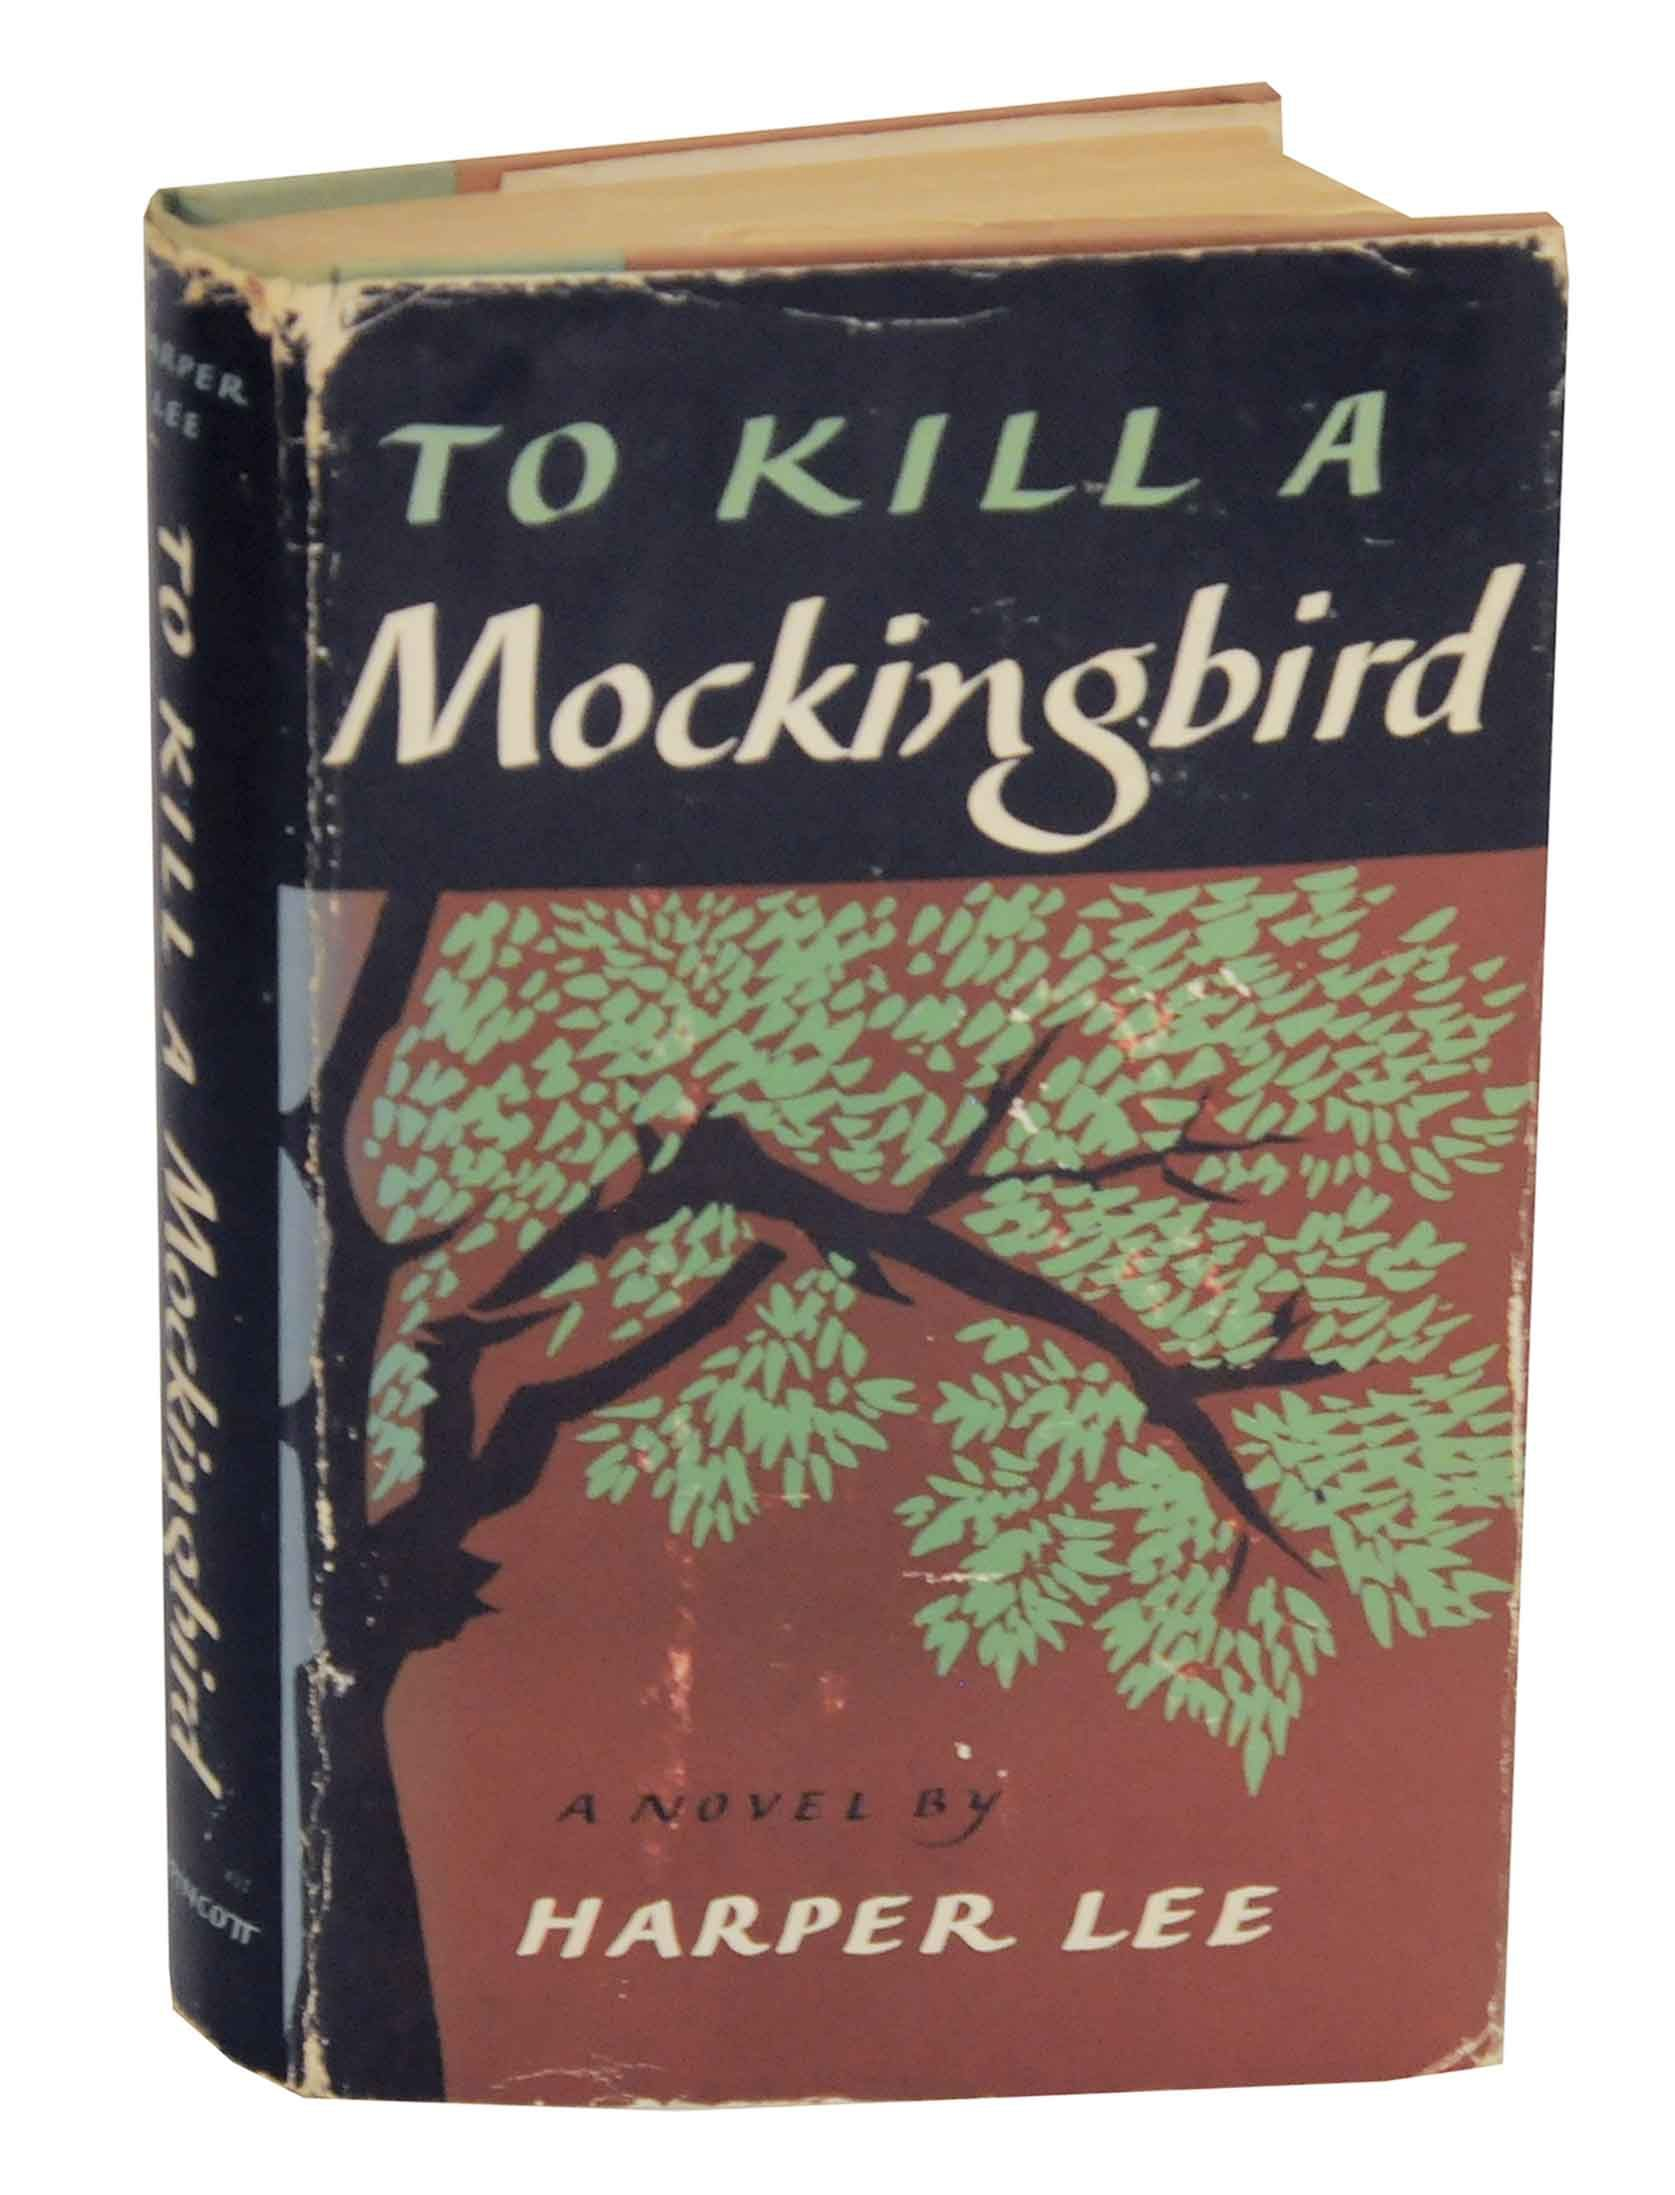 an analysis of the setting of harper lees to kill a mockingbird Context nelle harper lee was born on april 28, 1926, in monroeville, alabama, a sleepy small town similar in many ways to maycomb, the setting of to kill a mockingbird.